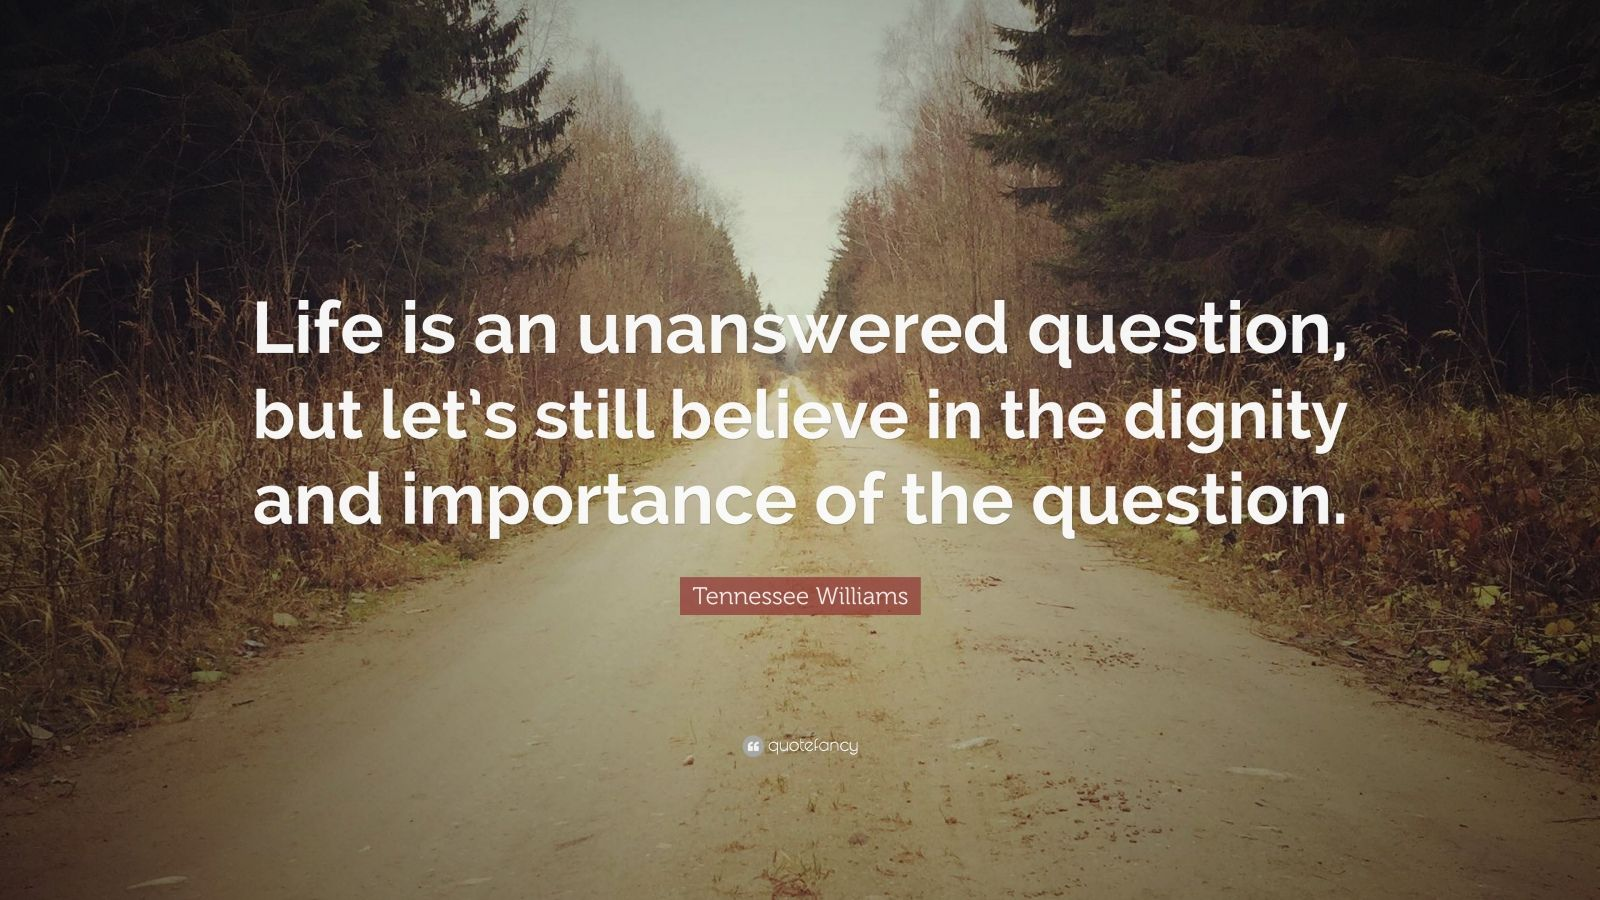 """Tennessee Williams Quote: """"Life is an unanswered question, but let's still believe in the dignity and importance of the question."""""""